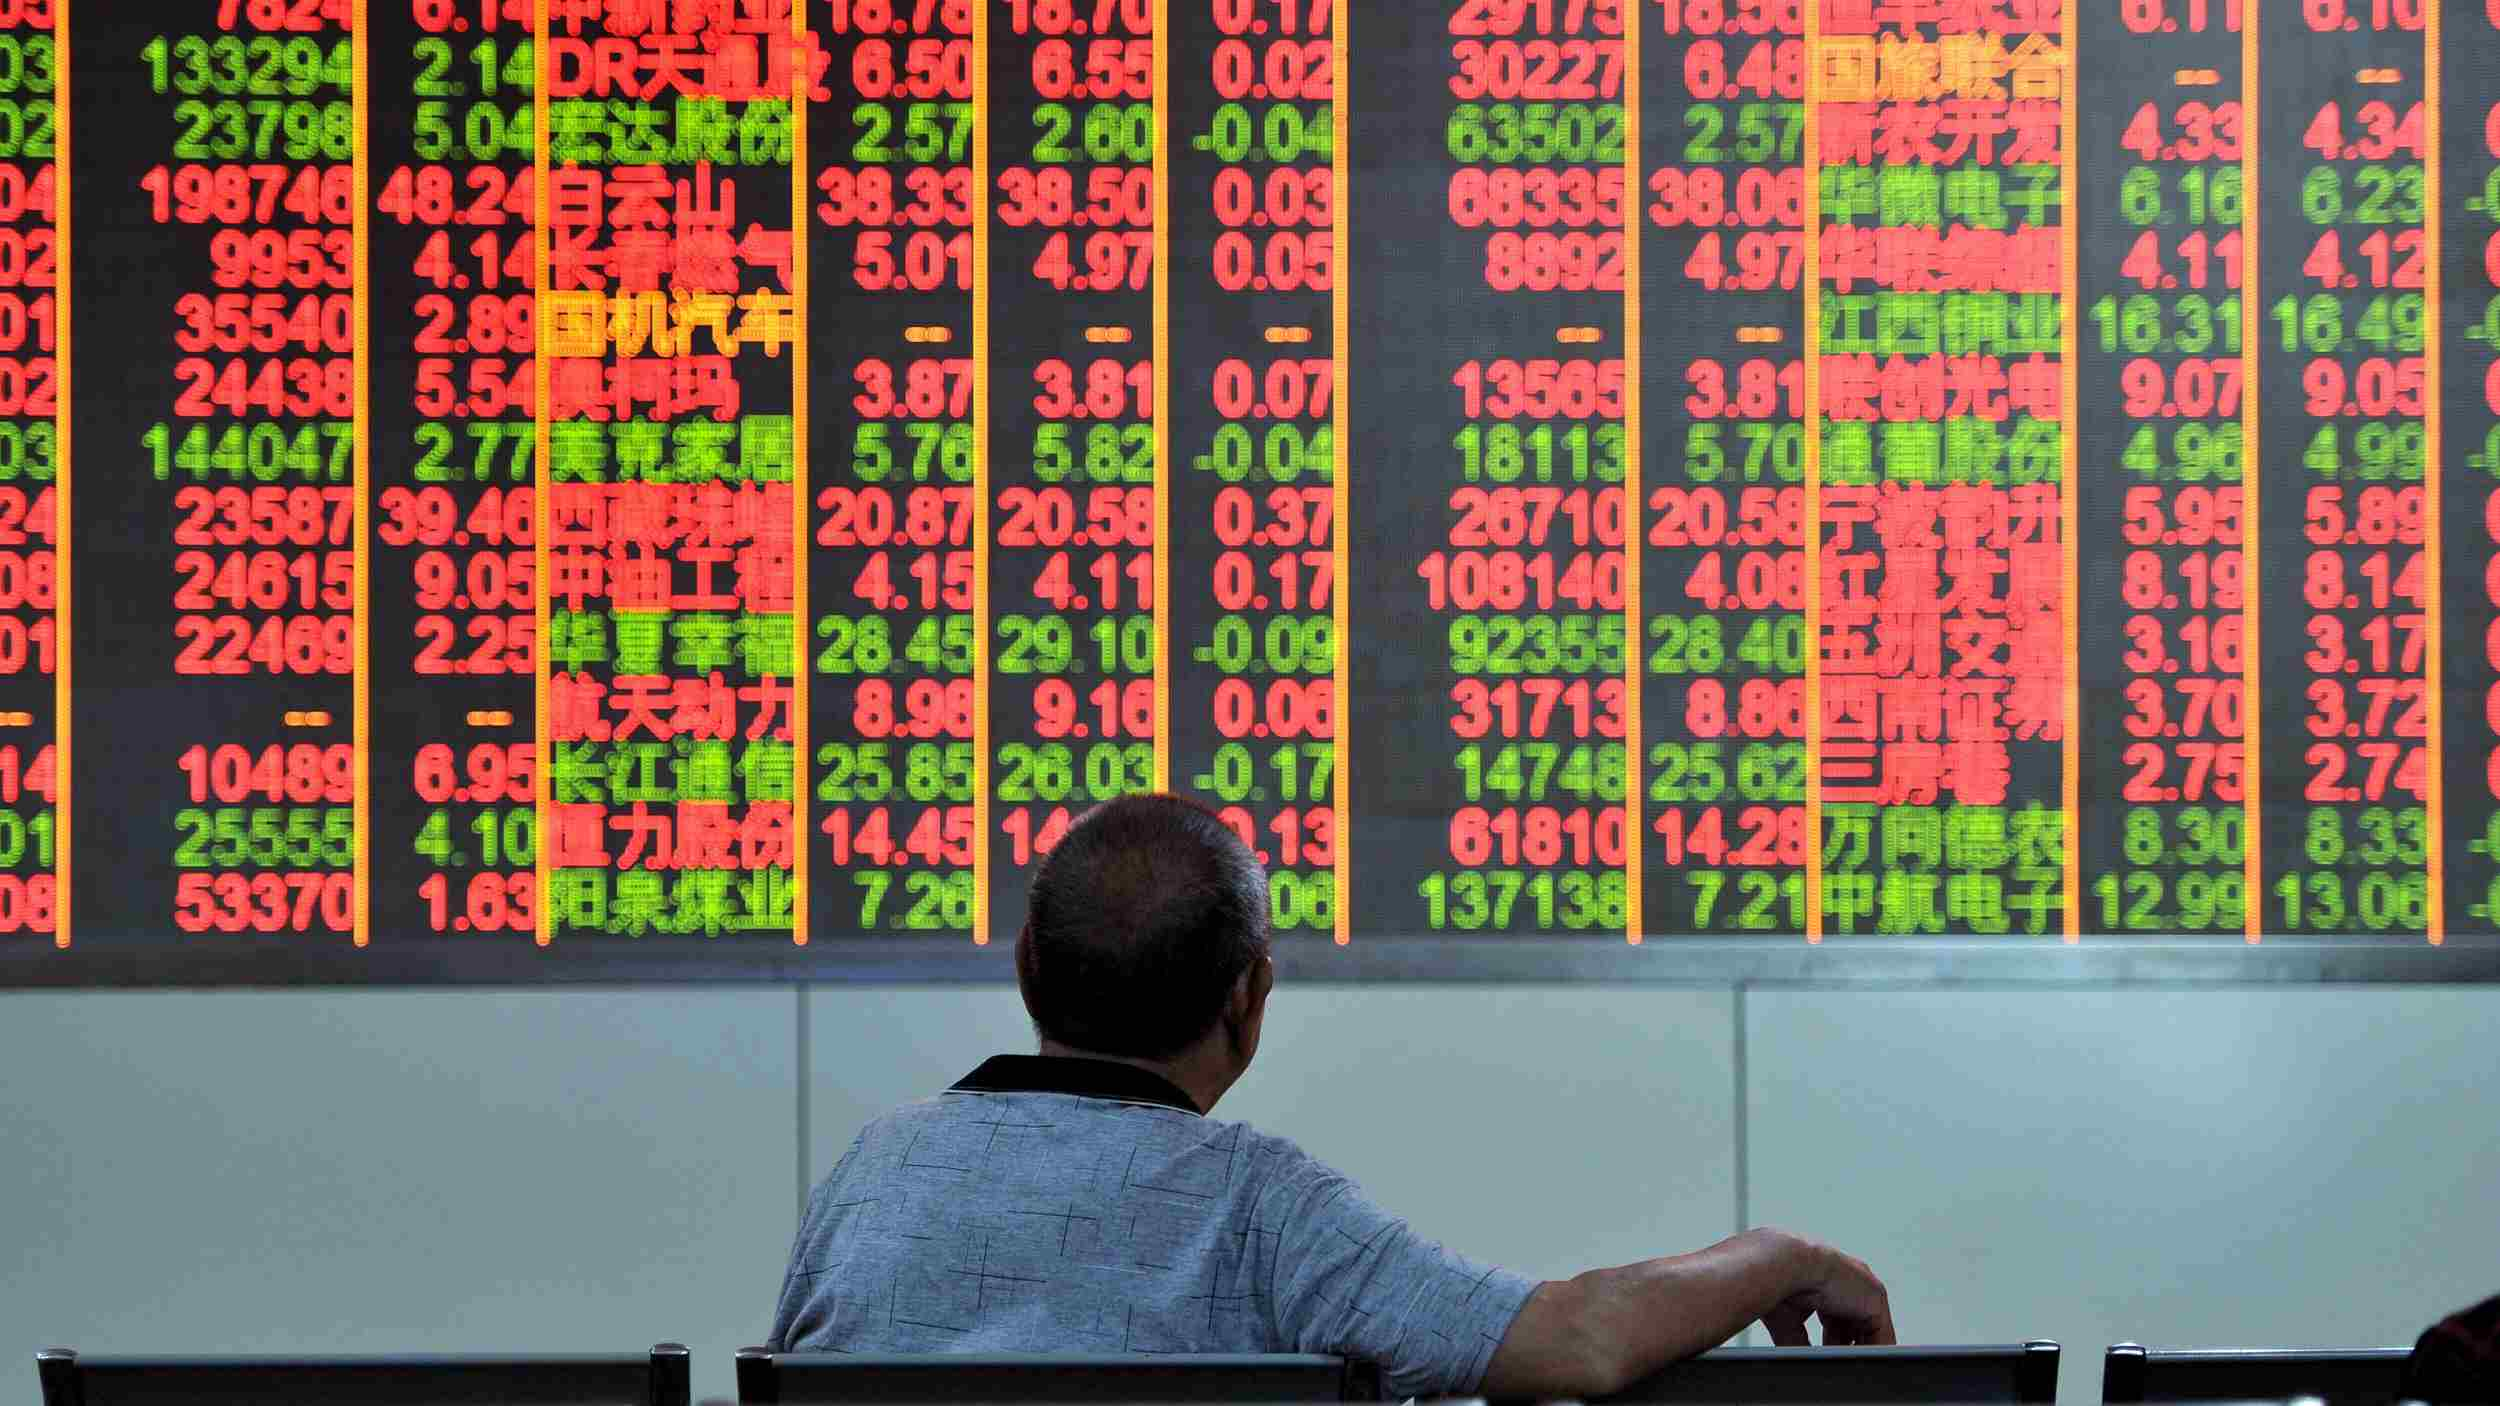 Chinese shares fall as key index hits over two-year low